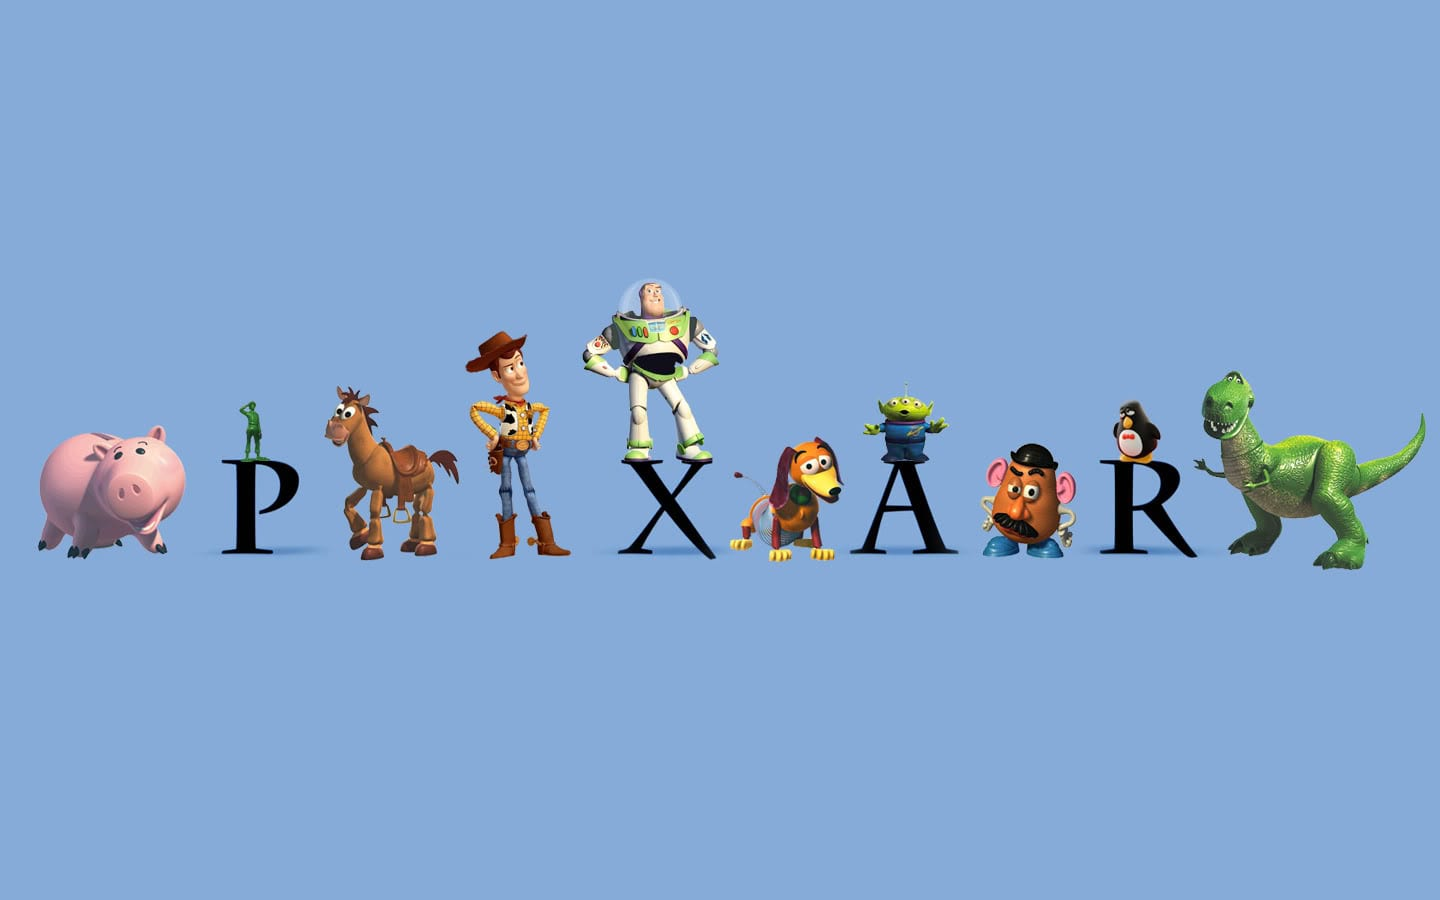 The Pixar logo is visible with various Pixar characters surrounding it.